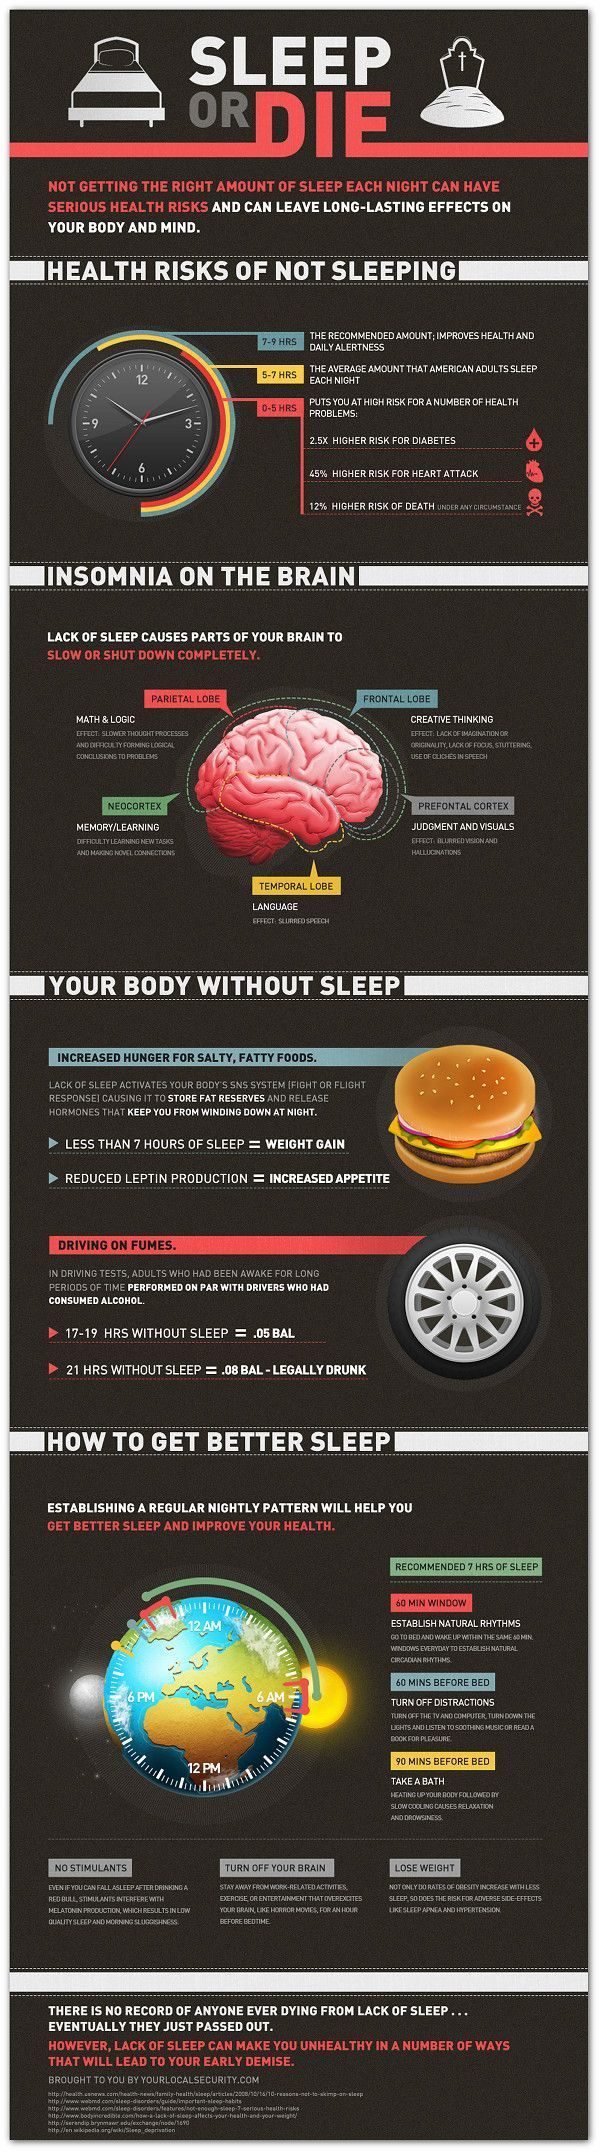 Sleep deprivation is destroying your brain